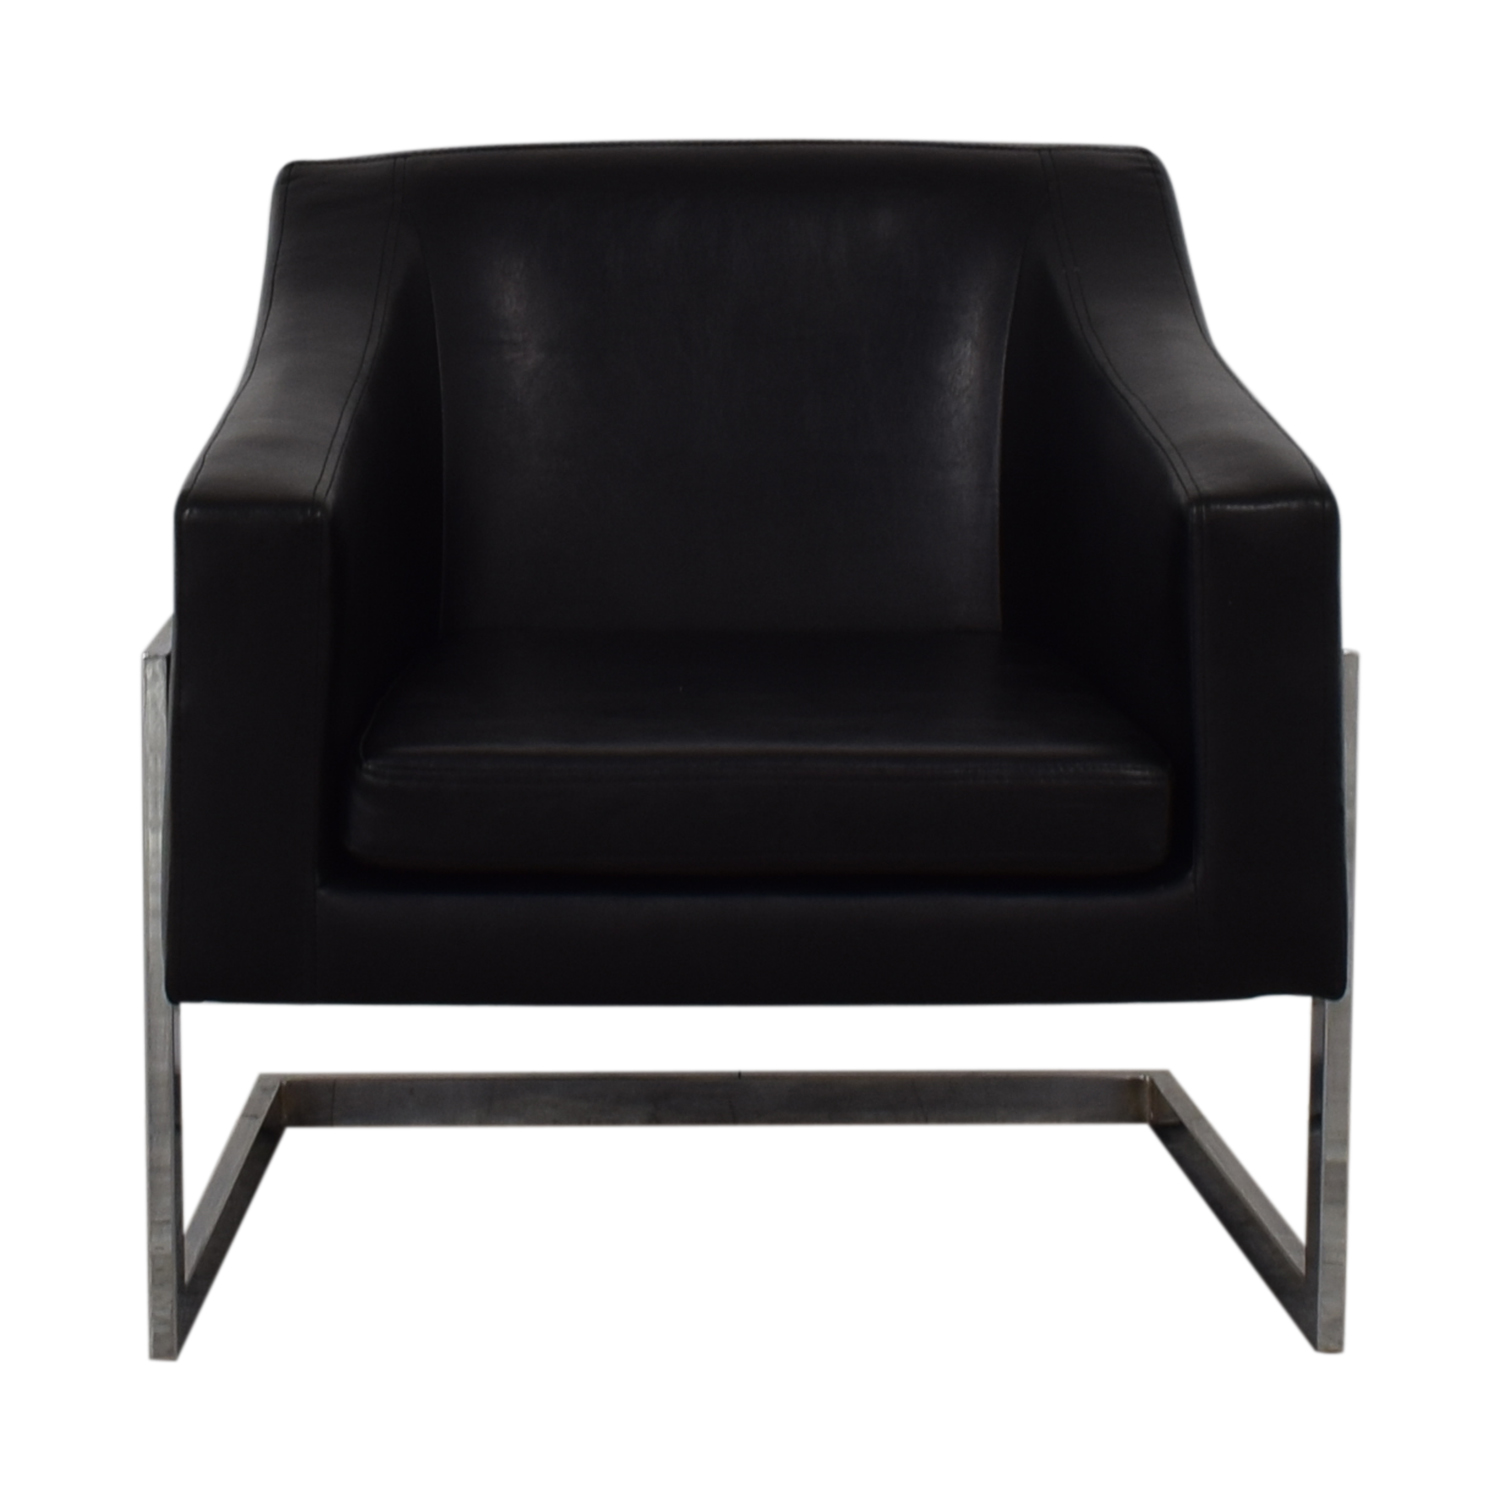 Coaster Accent Chair 57 Off Coaster Fine Furniture Coaster Fine Furniture Black